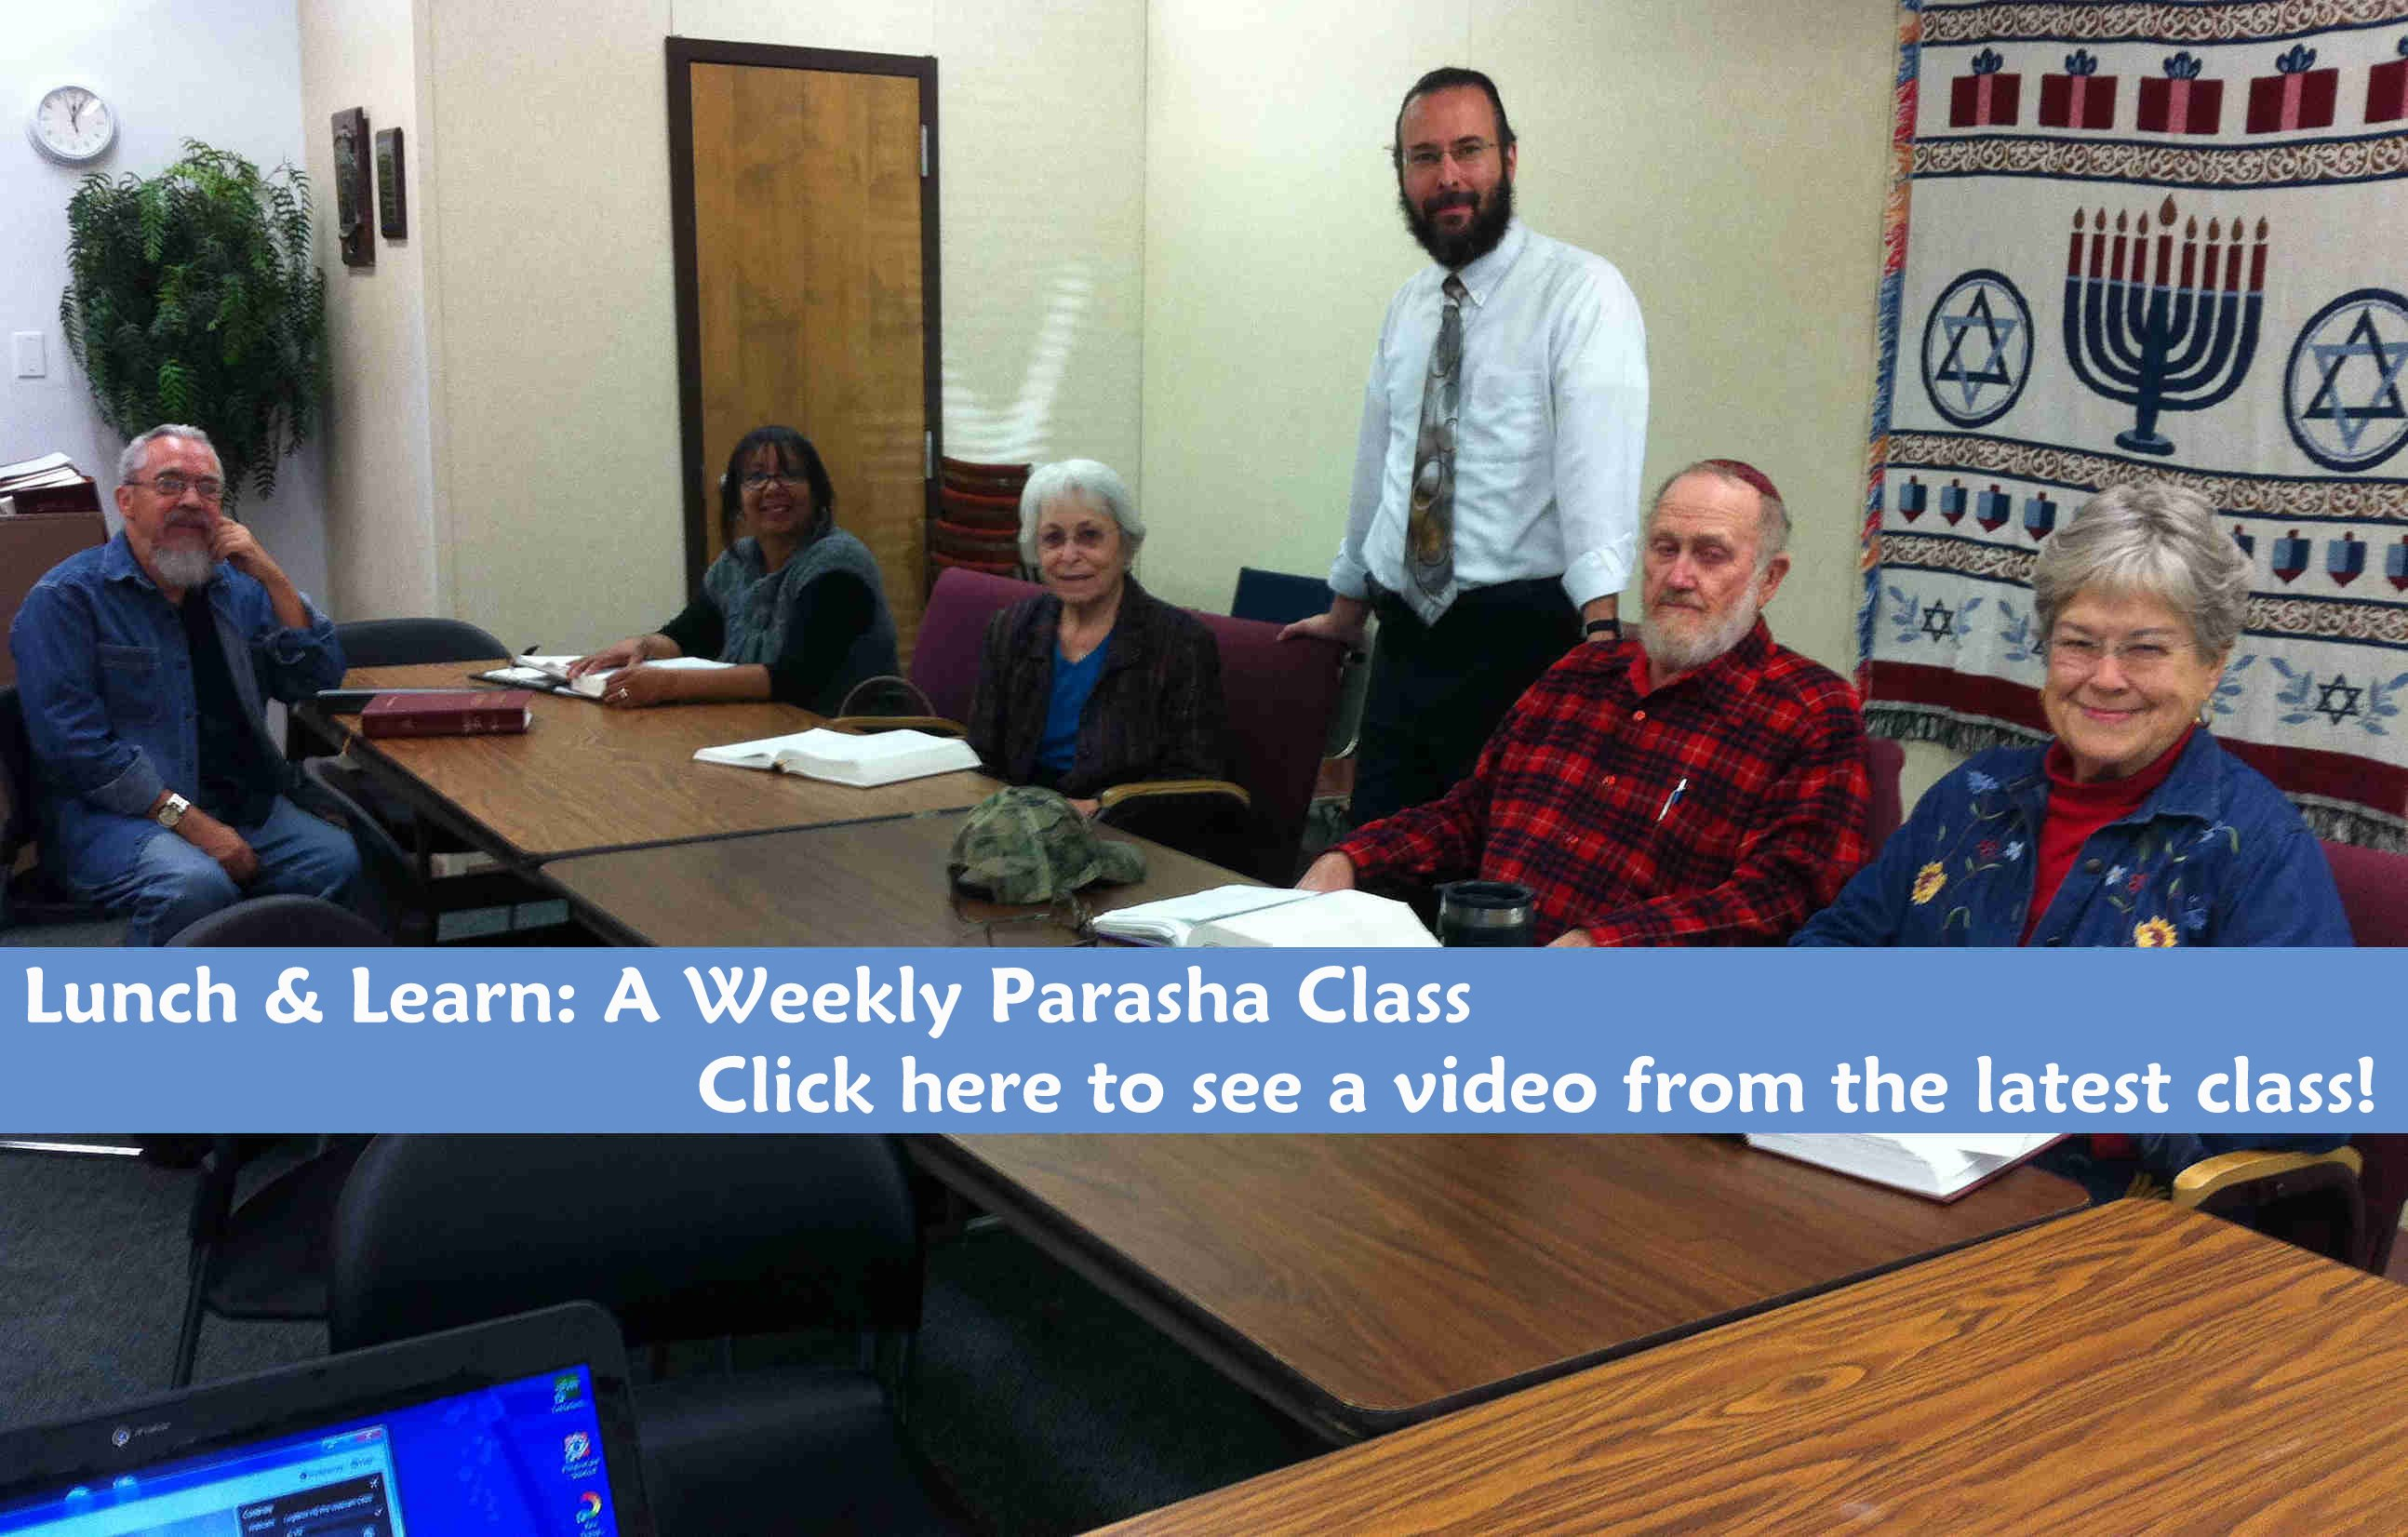 Lunch & Learn: A Weekly Parasha Class